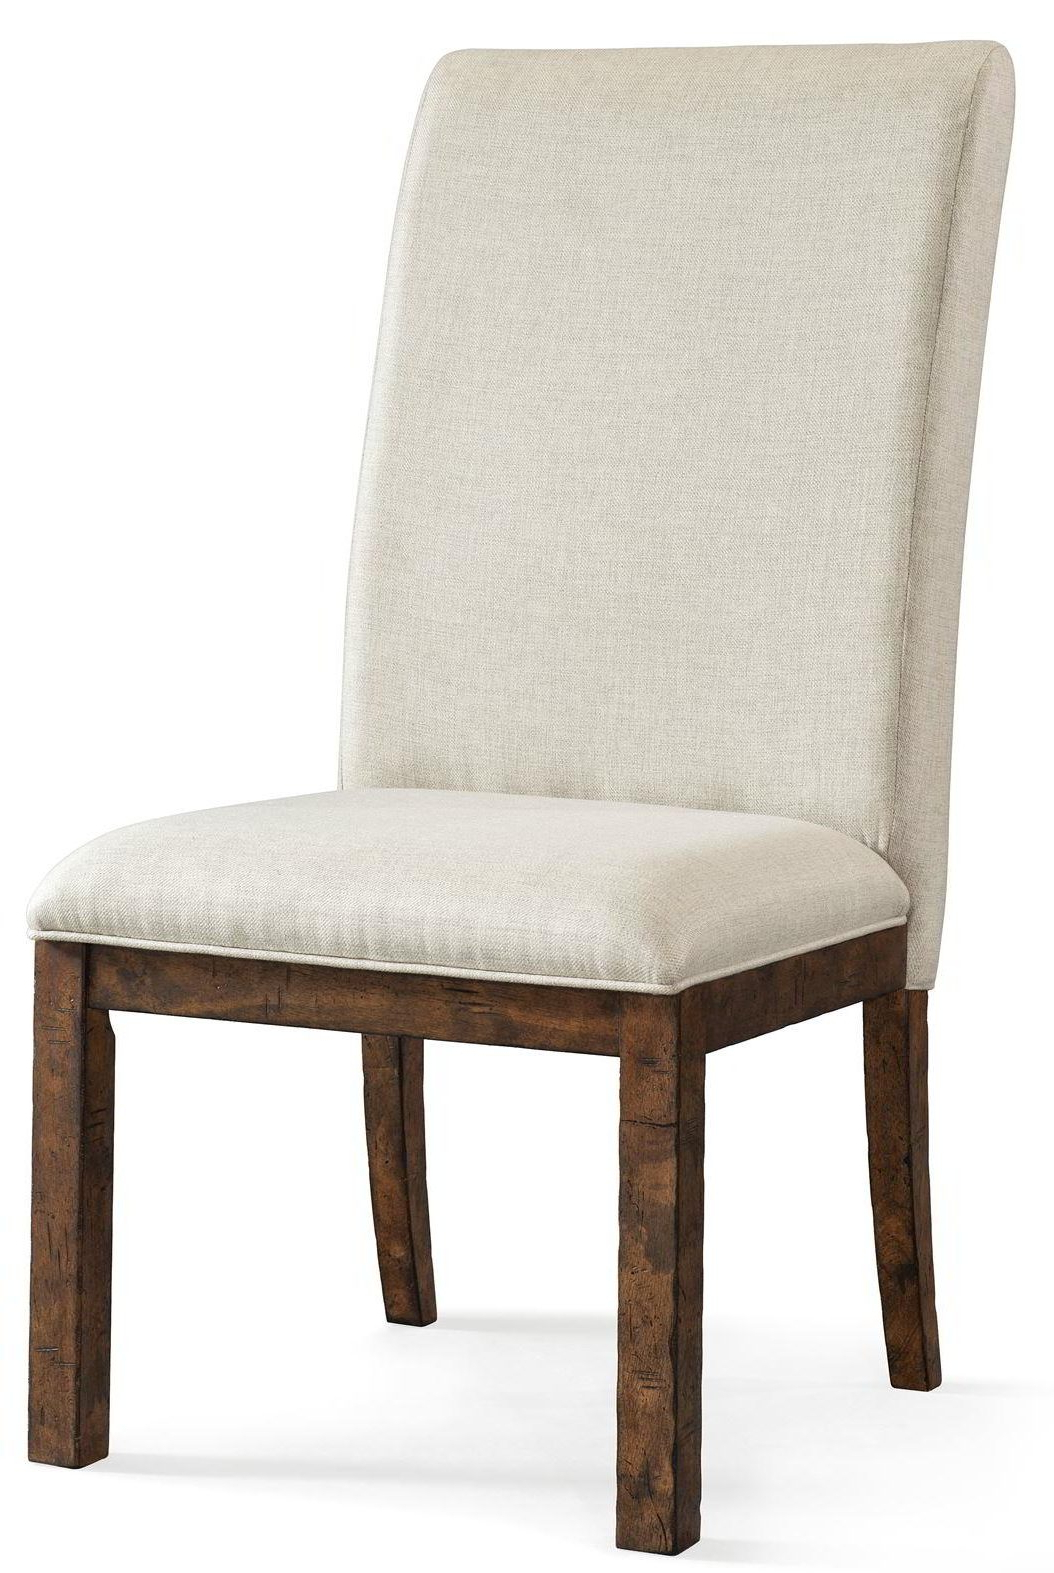 Gwen Upholstered Side Chair, Simple Elegance – Frontroom Furnishings For Widely Used Gwen Sofa Chairs (View 10 of 20)